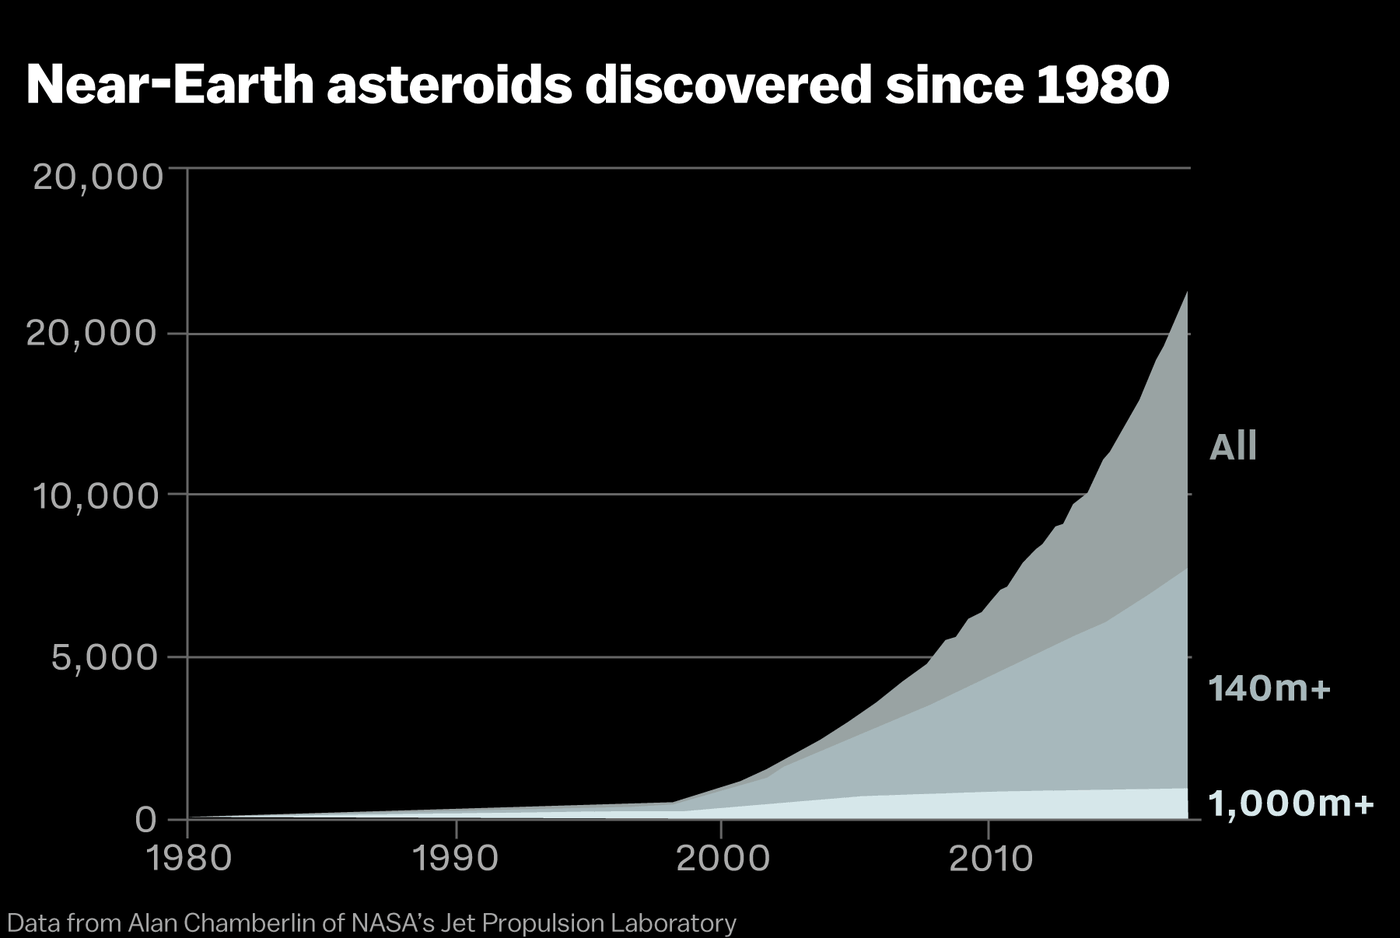 NASA has found 16,000 asteroids near Earth. Don't panic ...